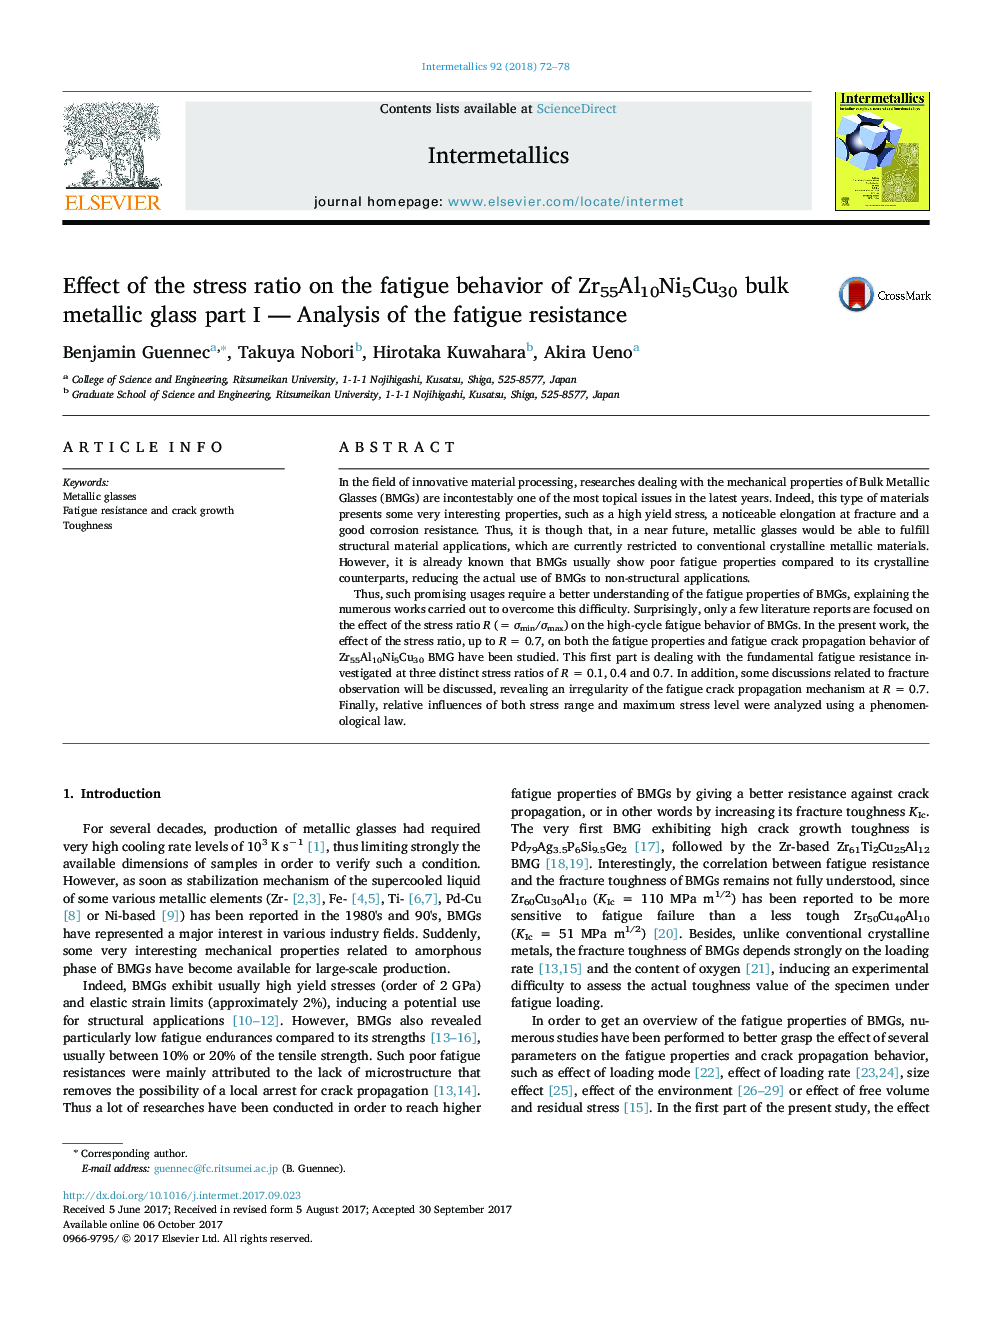 Effect of the stress ratio on the fatigue behavior of Zr55Al10Ni5Cu30 bulk metallic glass part I - Analysis of the fatigue resistance